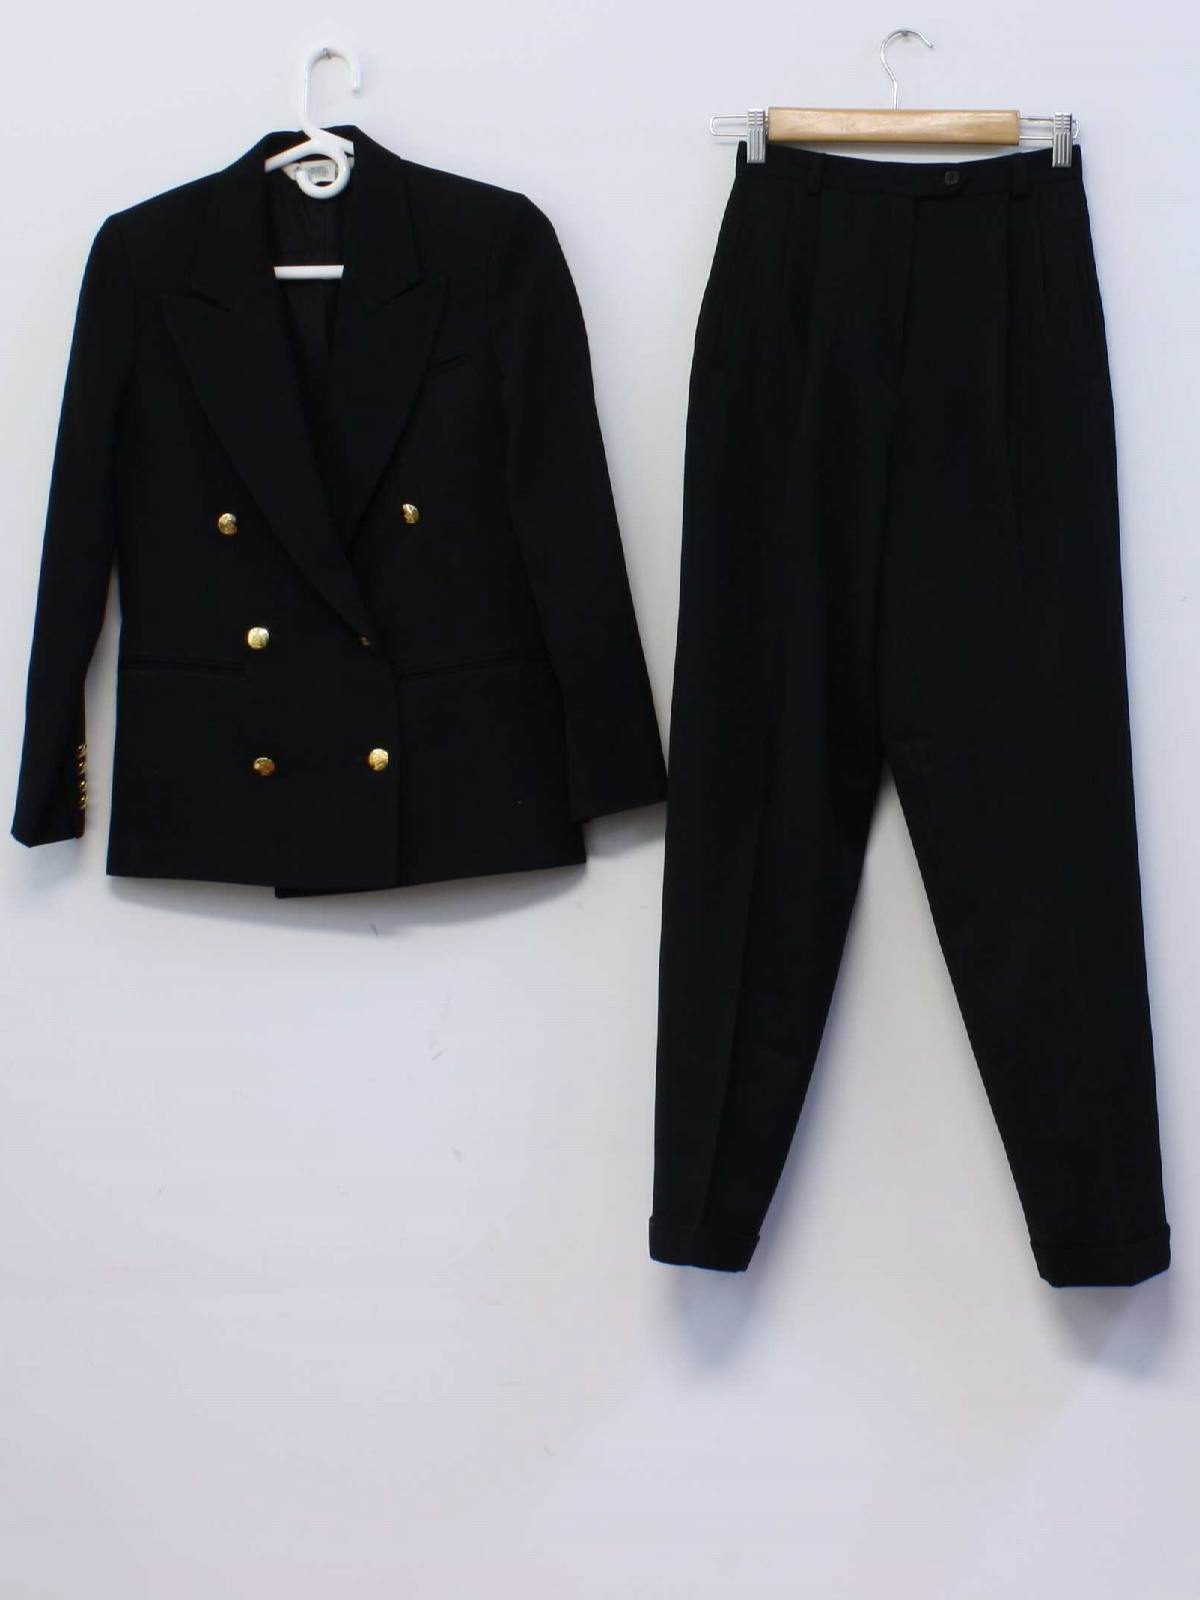 Austin Reed Petite Made In Usa 80 S Vintage Suit 80s Austin Reed Petite Made In Usa Womens Black Background Wool Blend Nylon Lined Two Piece Totally 80s Designer Pant Suit Double Breasted